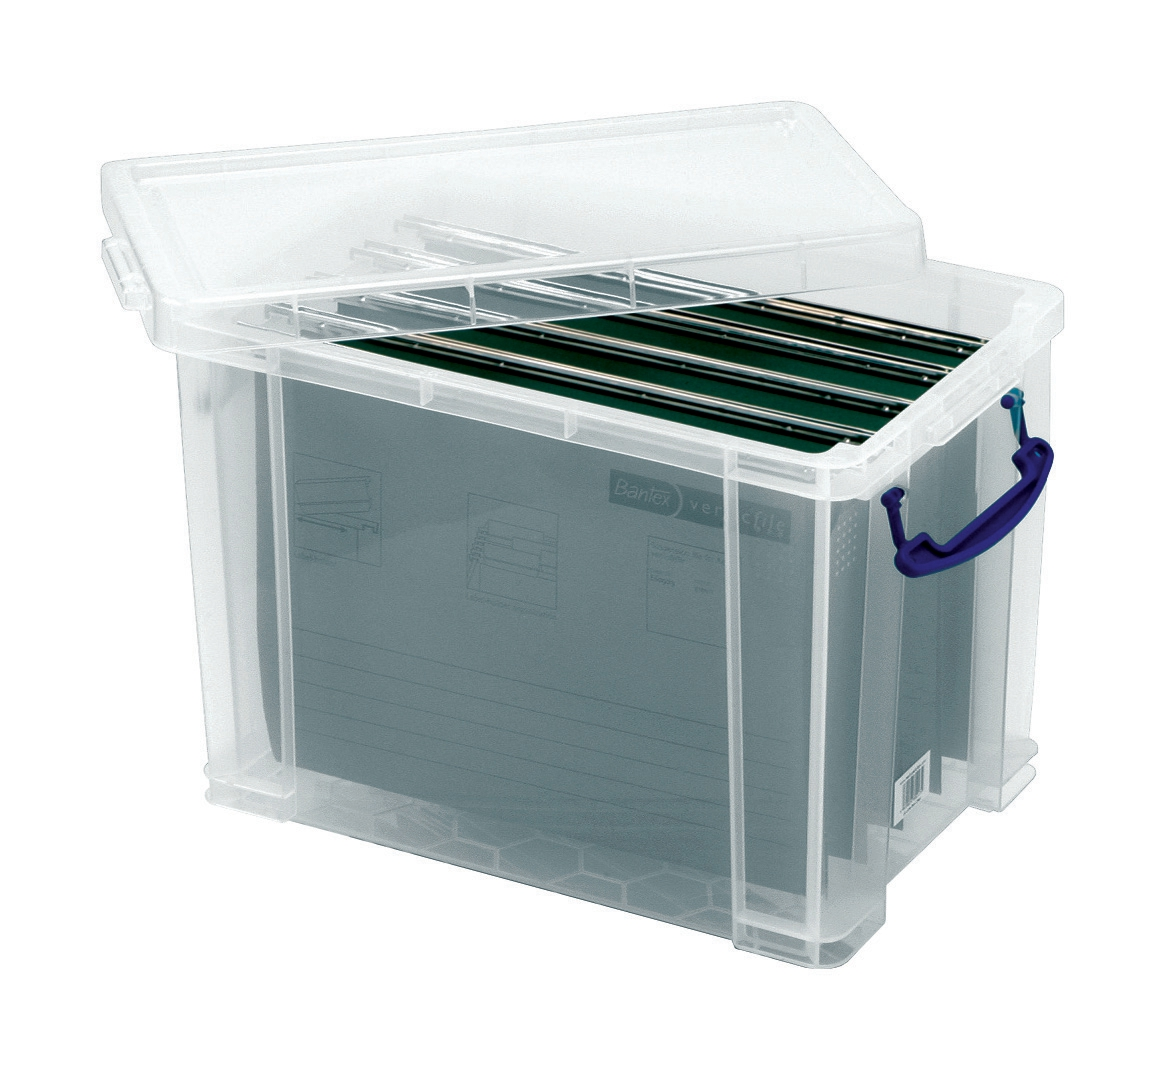 Image for Really Useful Filing Box Plastic 10 suspension files Foolscap 24 Litre W270xD465xH290mm Ref 24C&10susp